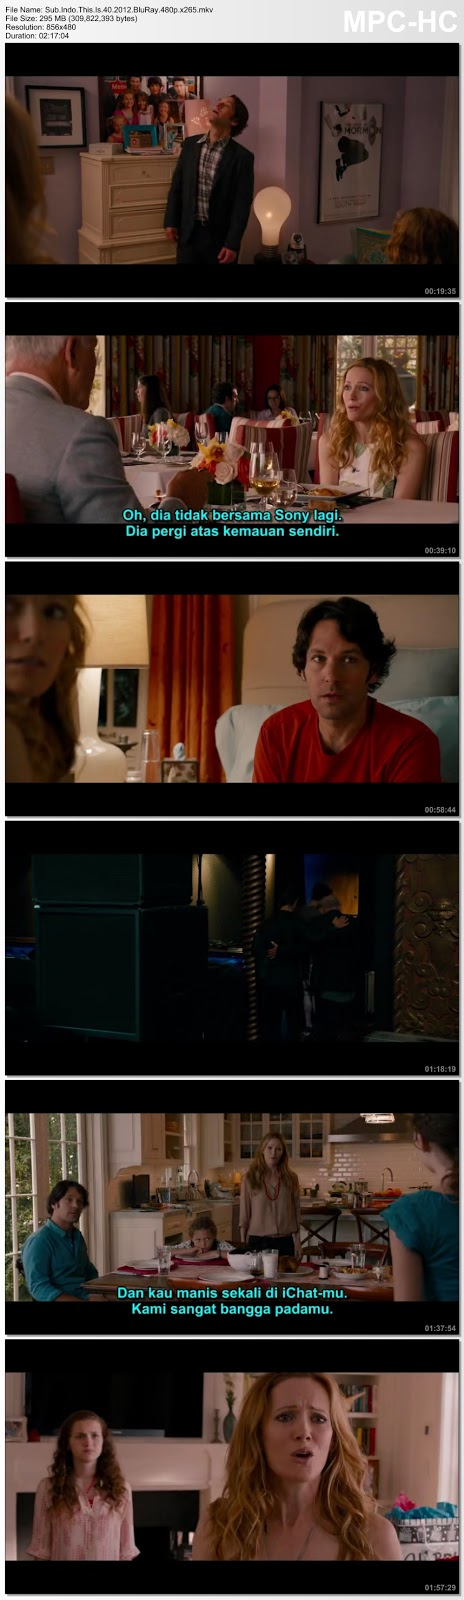 Screenshots Movie Sub.Indo.This Is 40 (2012).BluRay.480p.x265.mkv